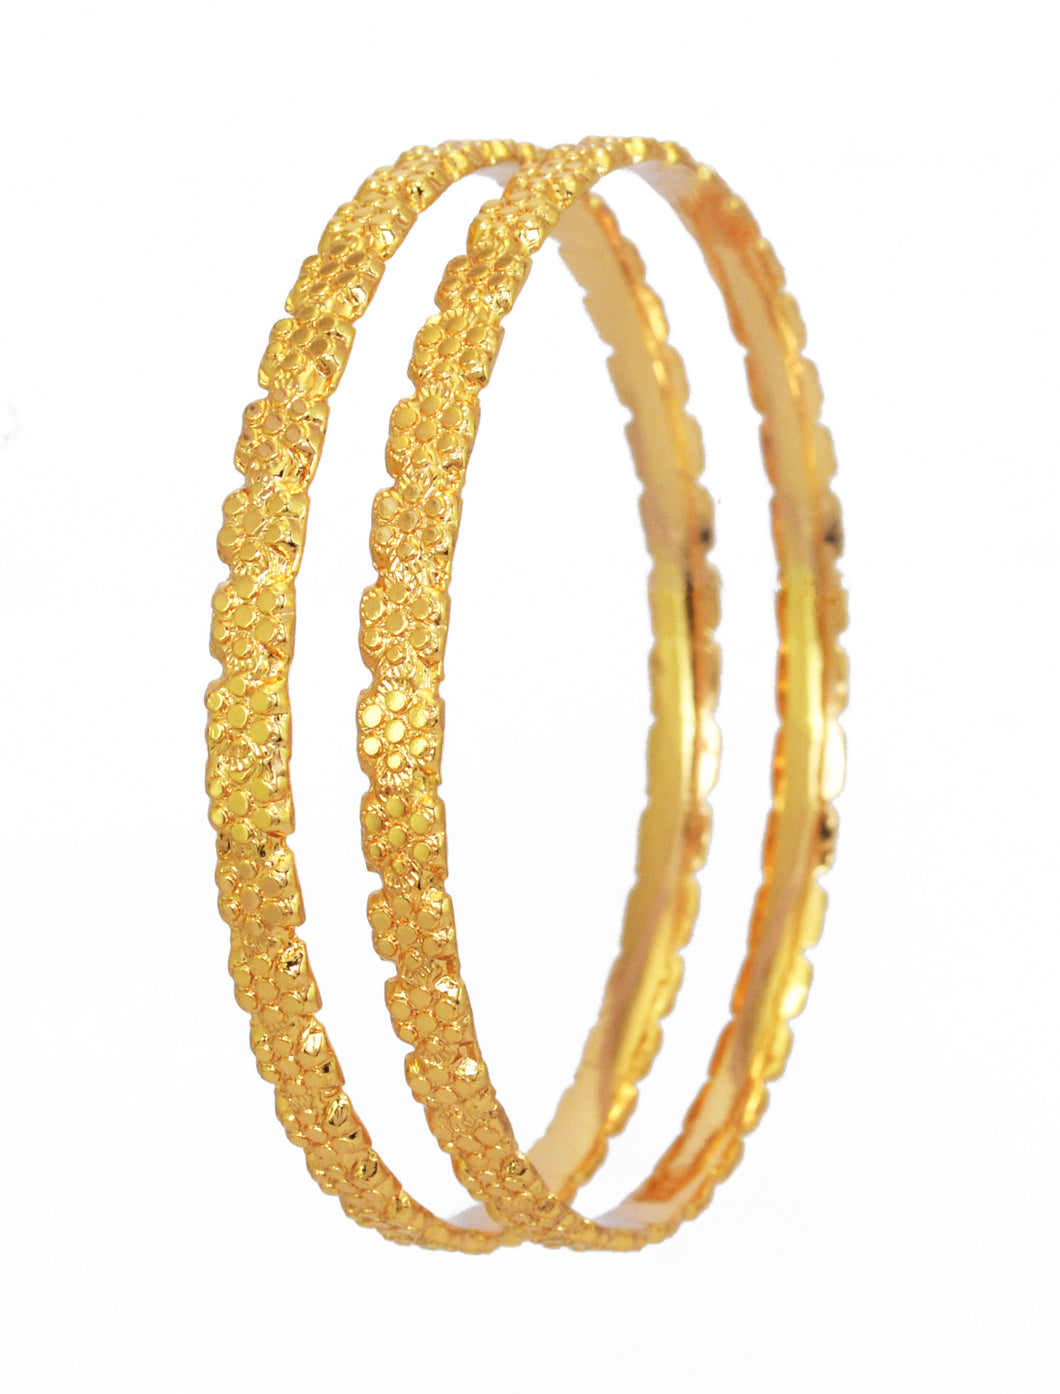 Pair of traditional design bangle. - Bangle by Shrayathi